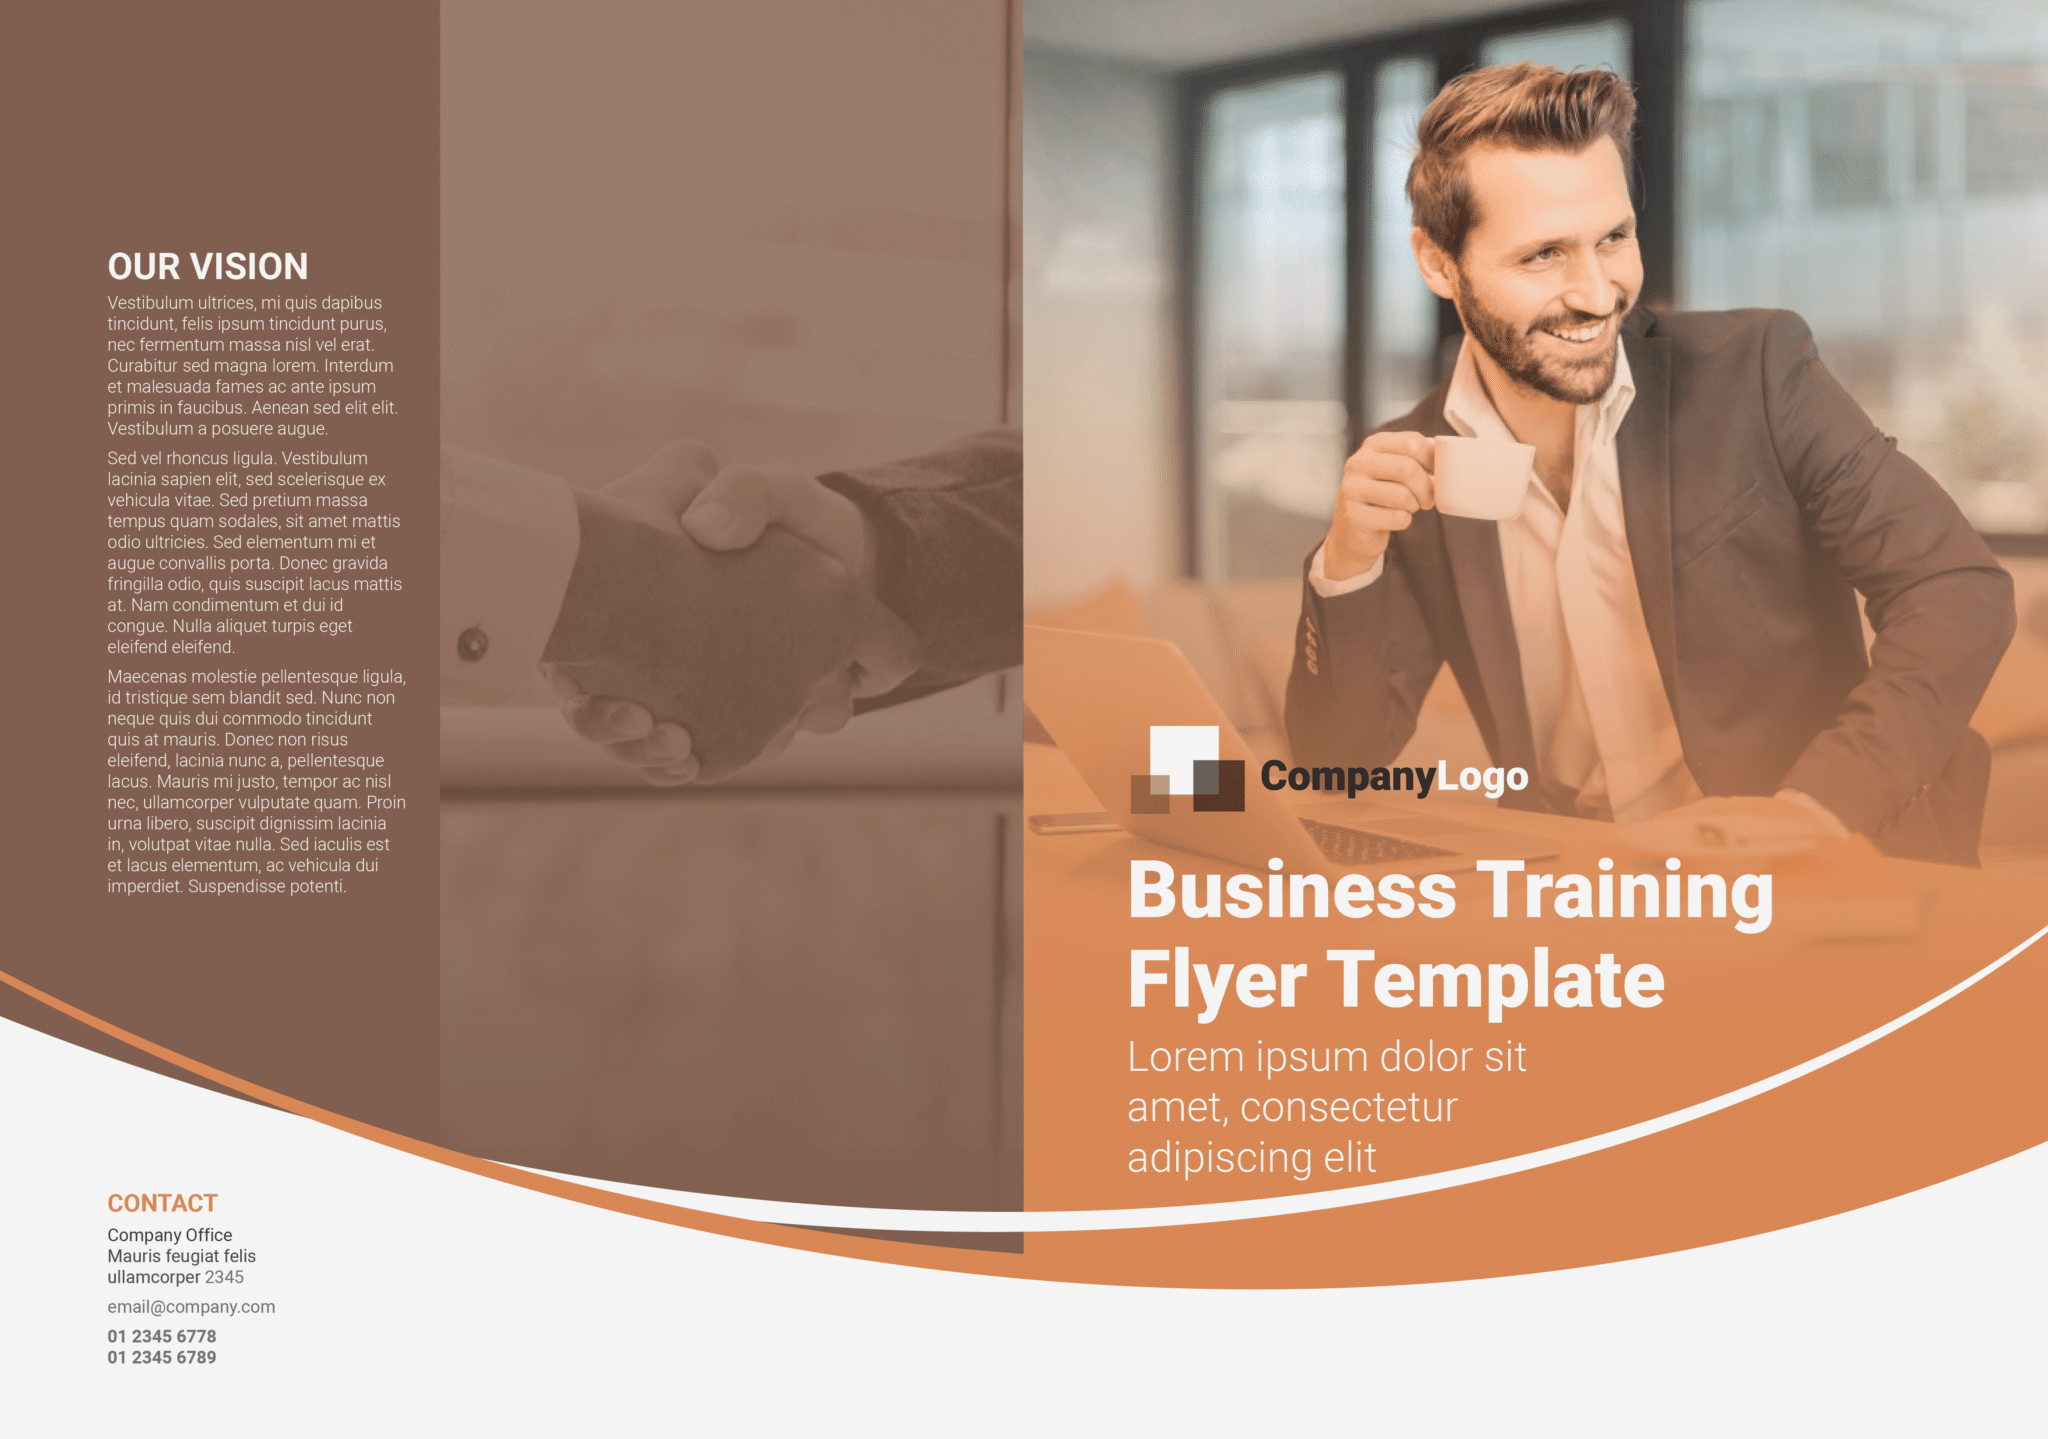 Business Training Flyer Template Outside